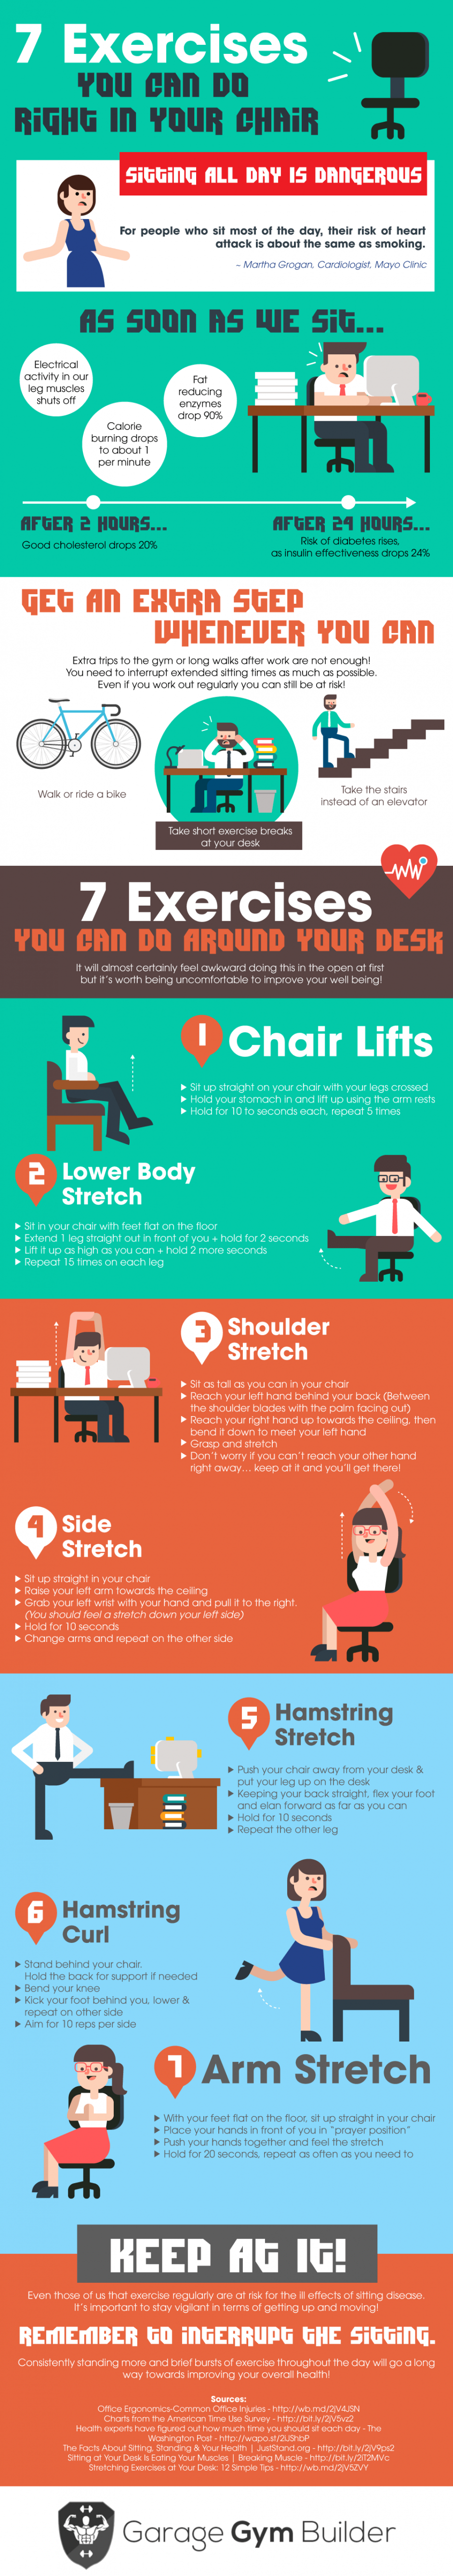 7-Exercises-You-Can-Do-Right-In-Your-Chair